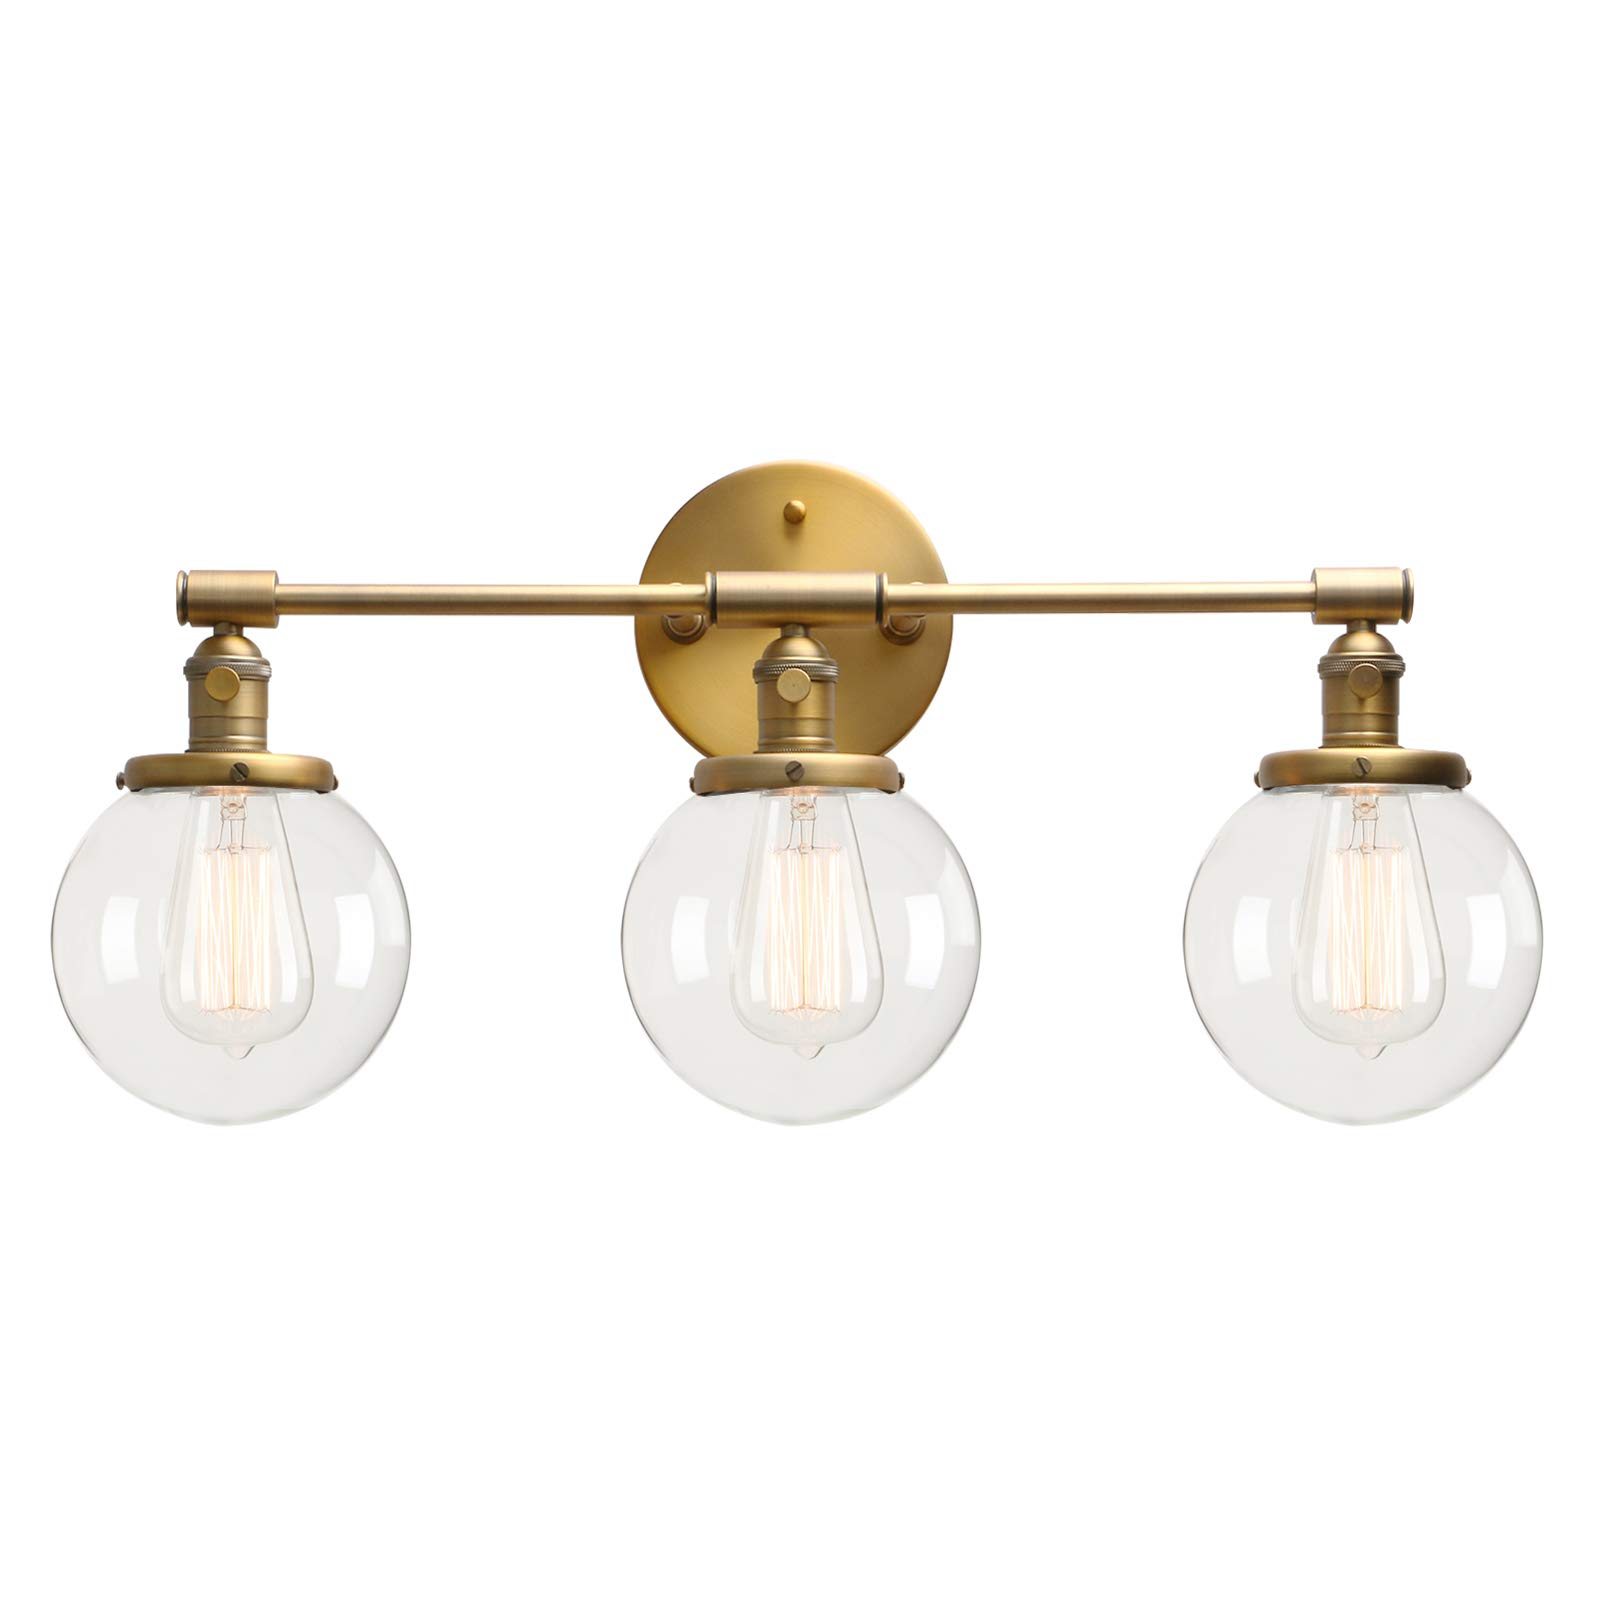 Permo Vintage Industrial Antique Three-Light Wall Sconces with Mini 5.9'' Round Clear Glass Globe Shade (Antique)